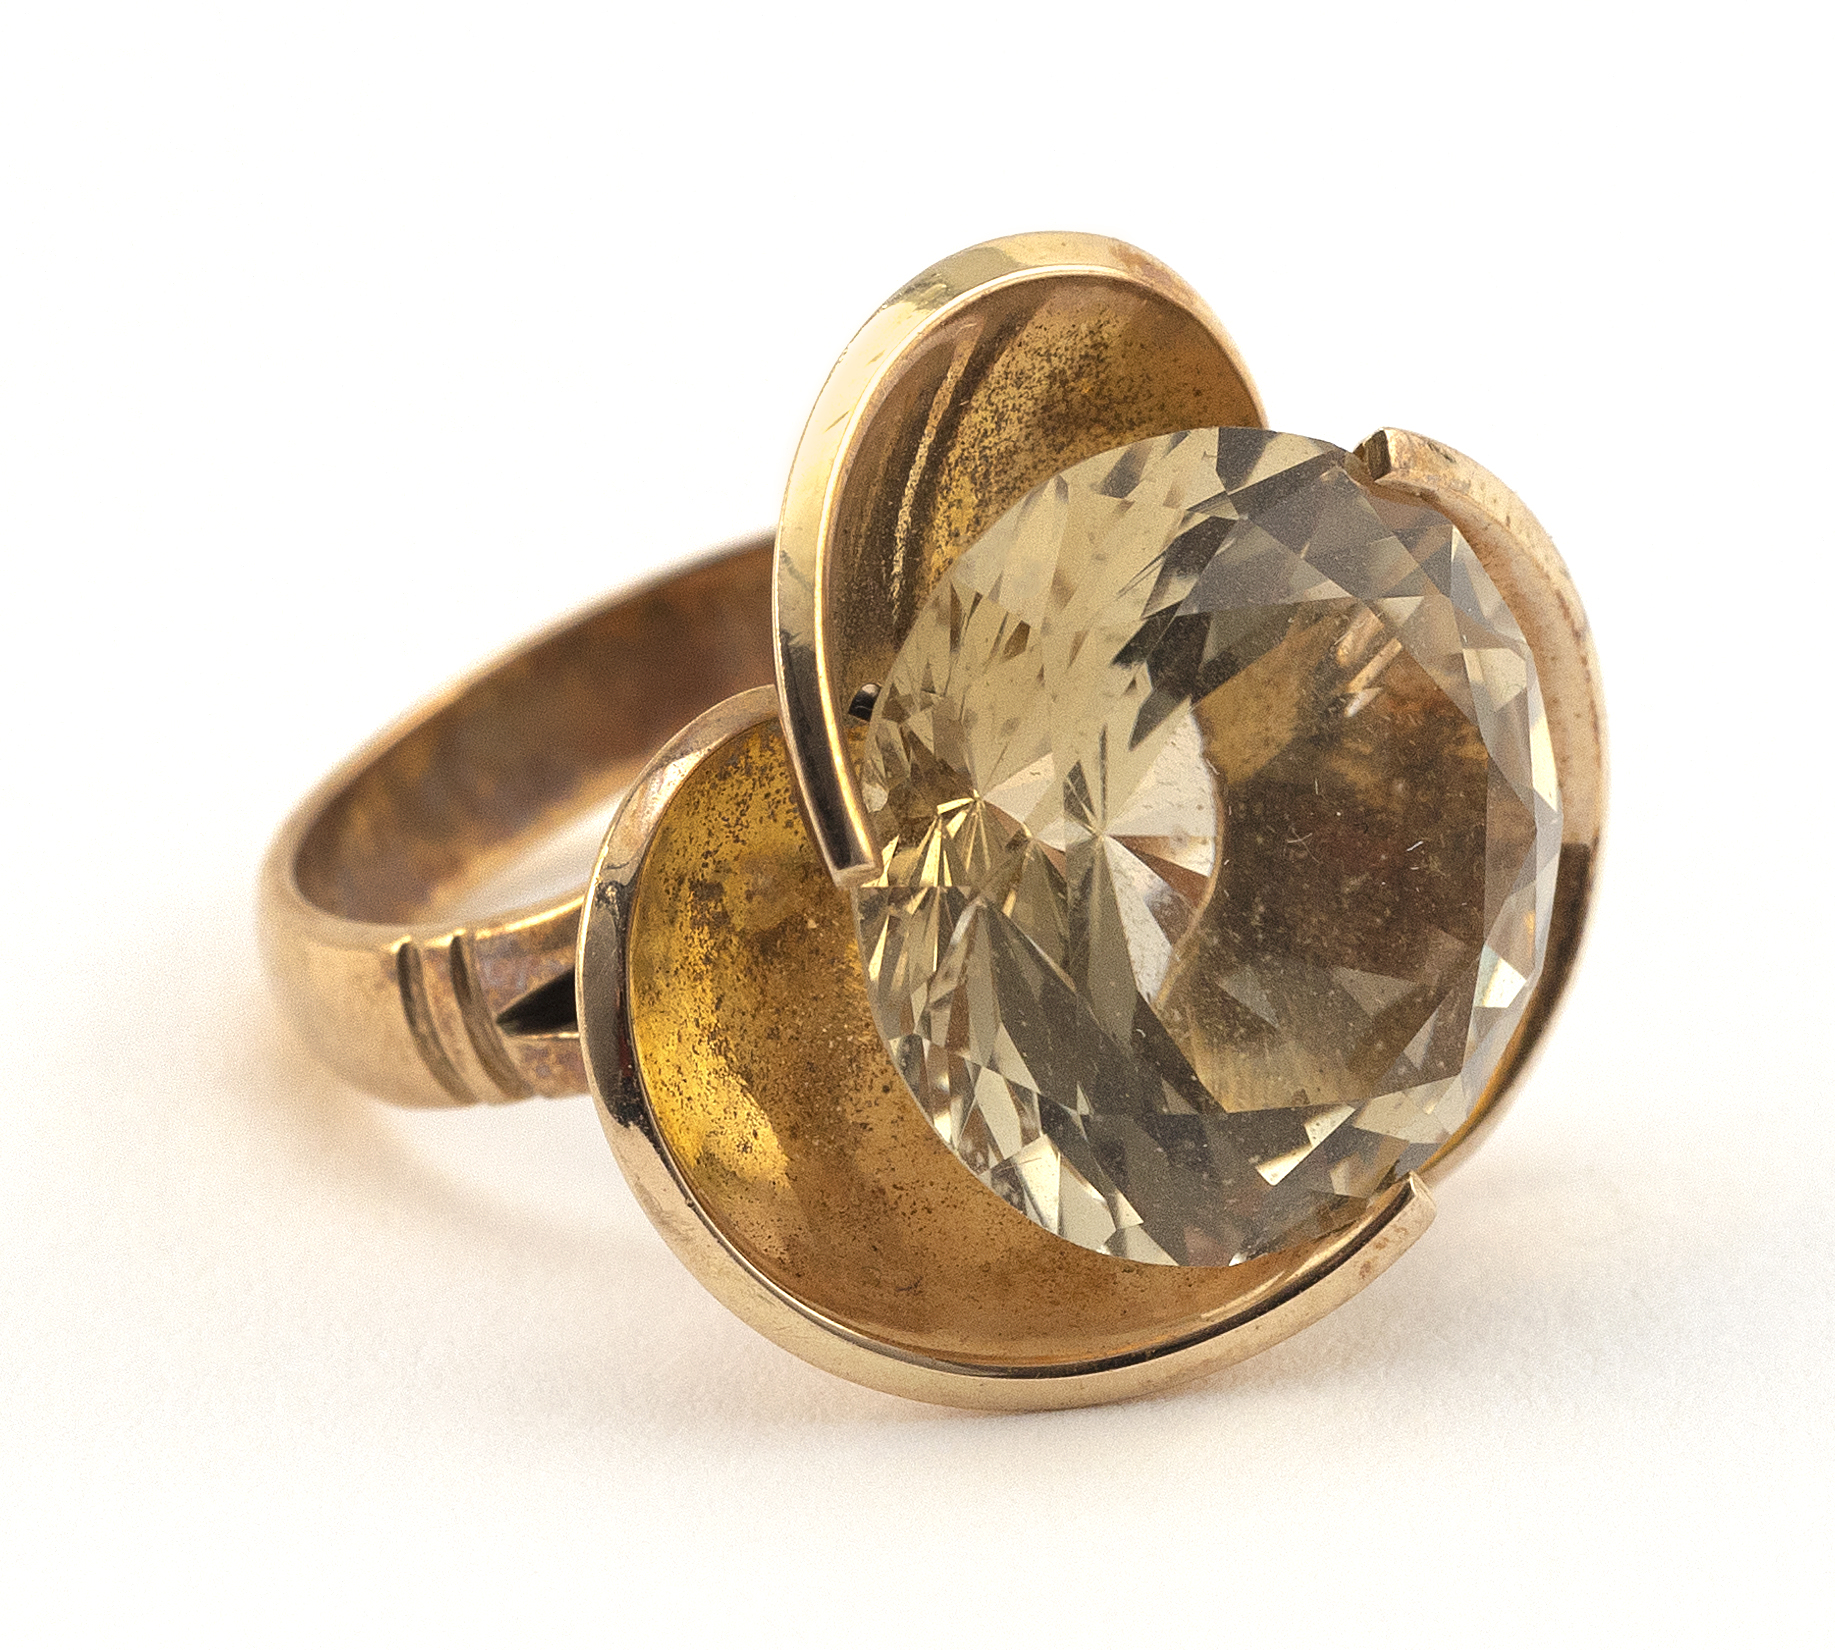 VINTAGE 14KT GOLD AND CITRINE COCKTAIL RING Approx. 5.62 total dwt.